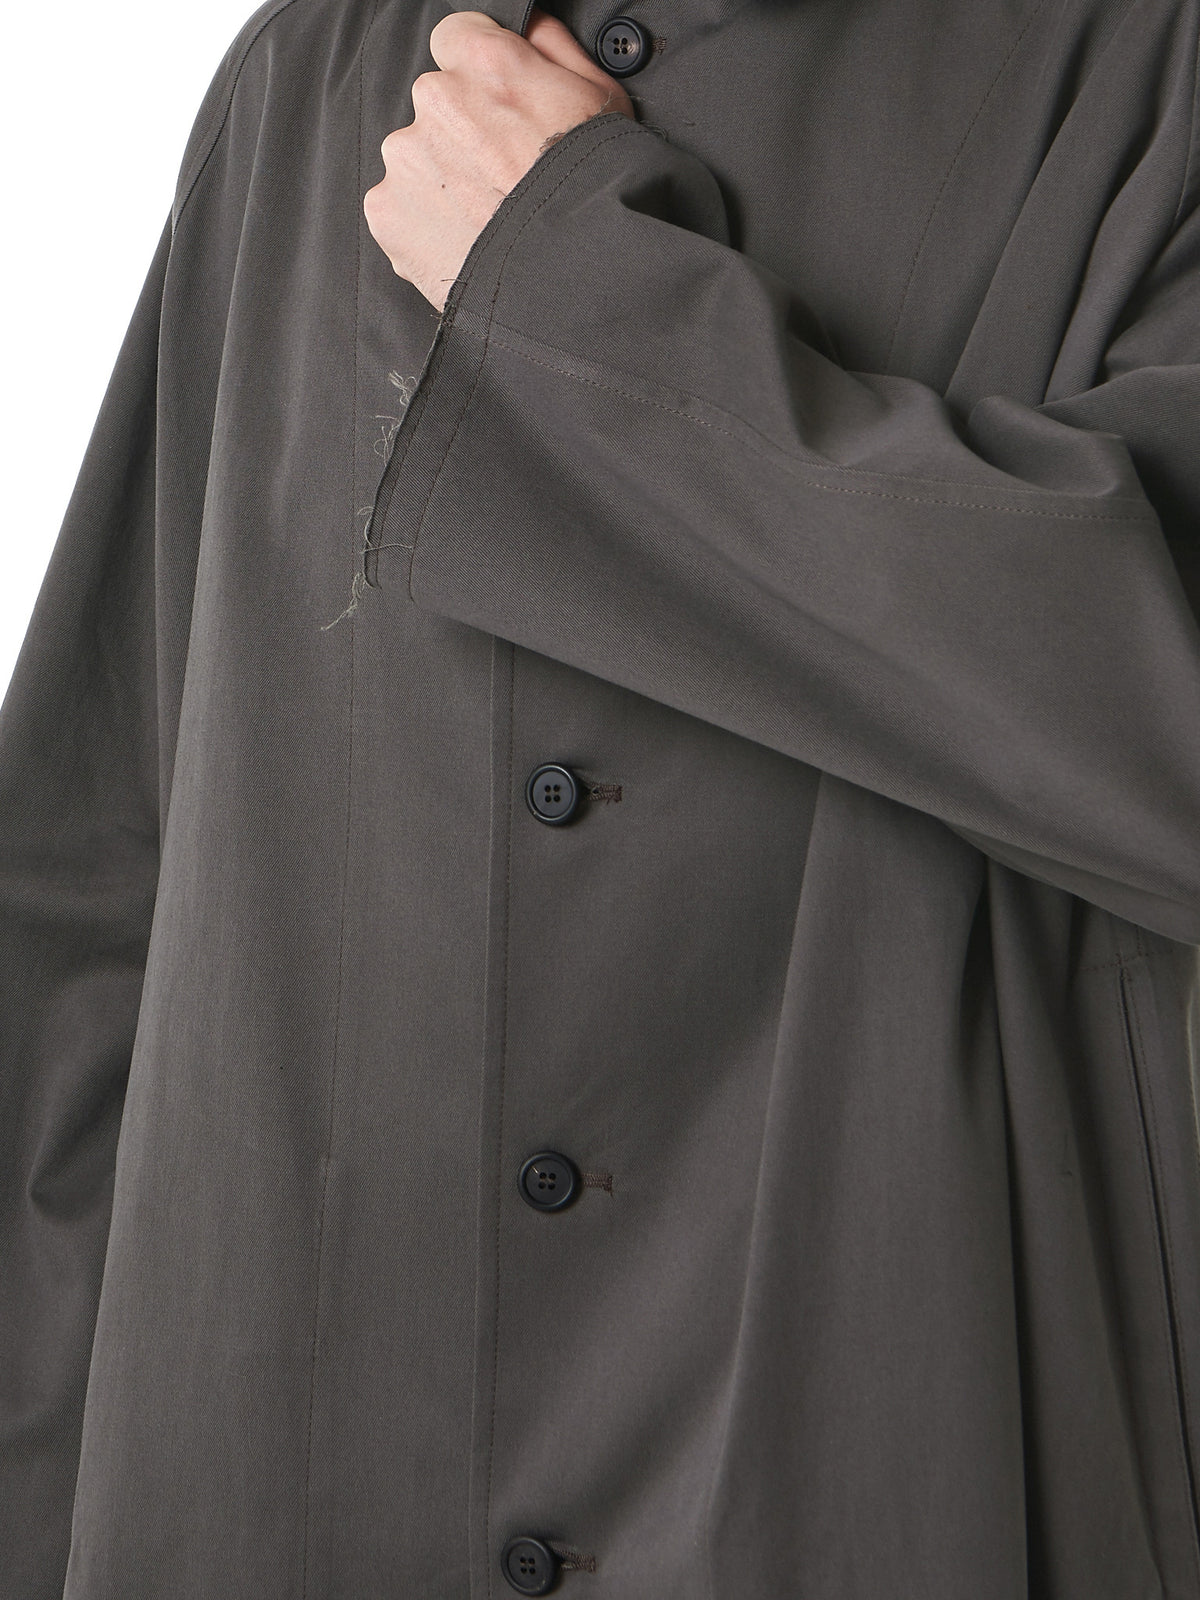 'Gabardine' Single-Breasted Coat (516-GR-GREEN) - H. Lorenzo